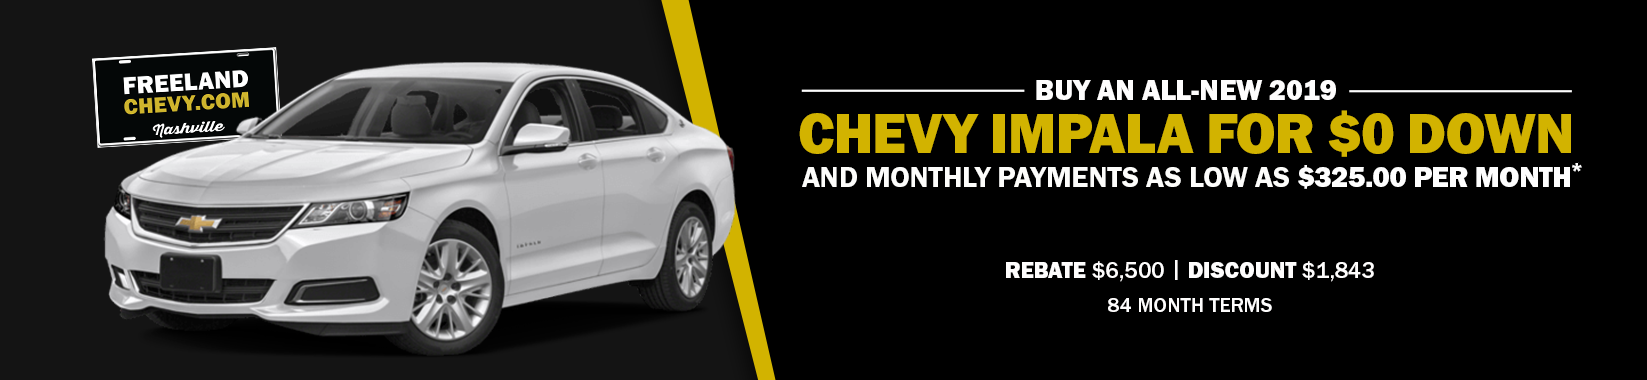 Buy an all-new 2019 Chevy Impala for $0 down and monthly payments as low as $325.00 per month!